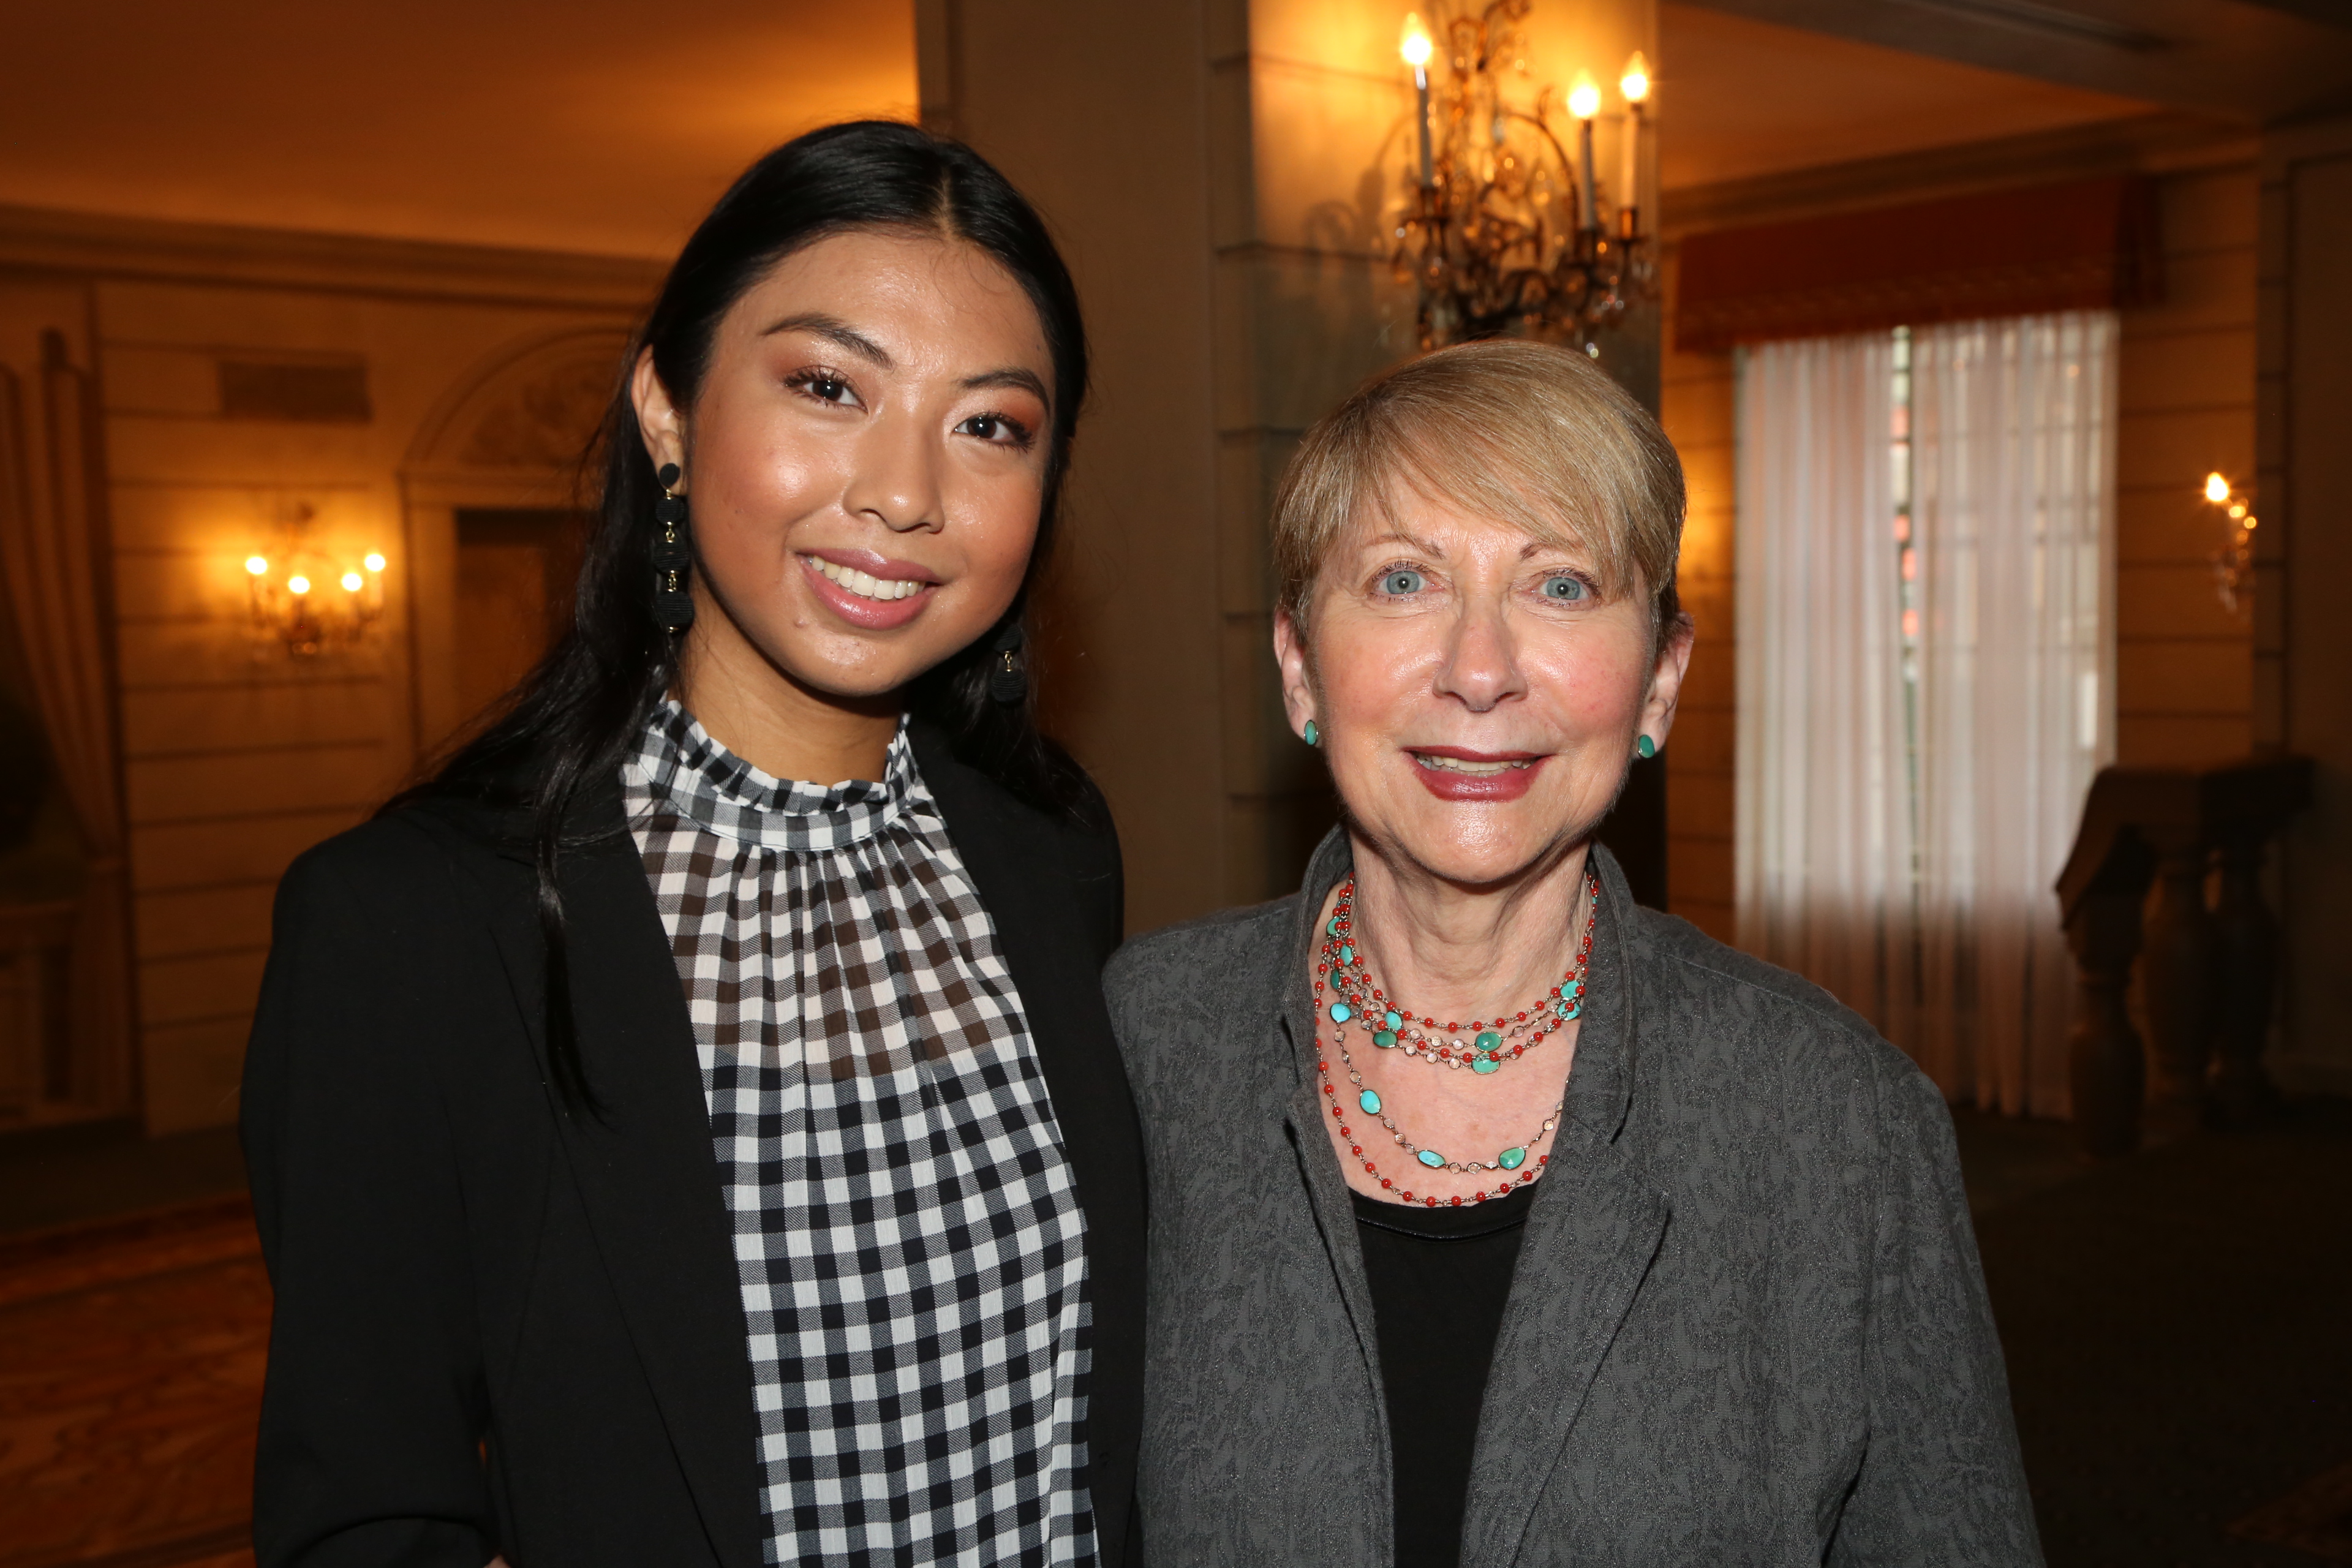 Ariana Yaptangco and her sponsor, Betsy Frank at the IRTS Newsmaker Breakfast